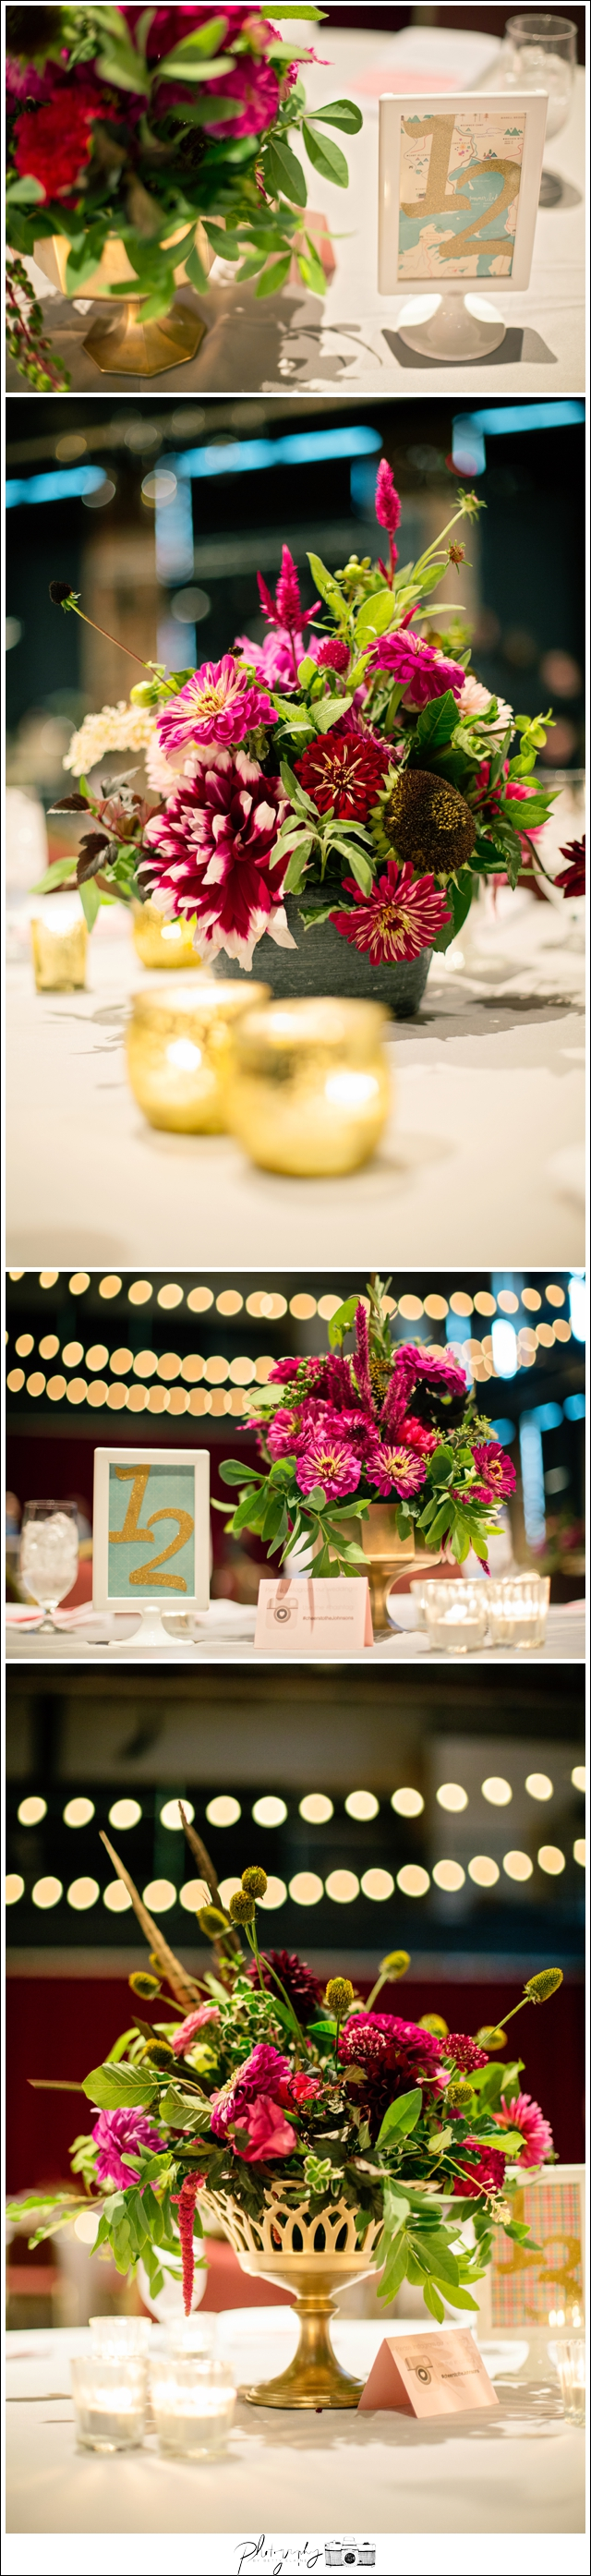 43-Reception-greenSinner-Floral-centerpiece-Pittsburgh-Opera-Industrial-Romantic-Wedding-Venue-Seattle-Photography-by-Betty-Elaine